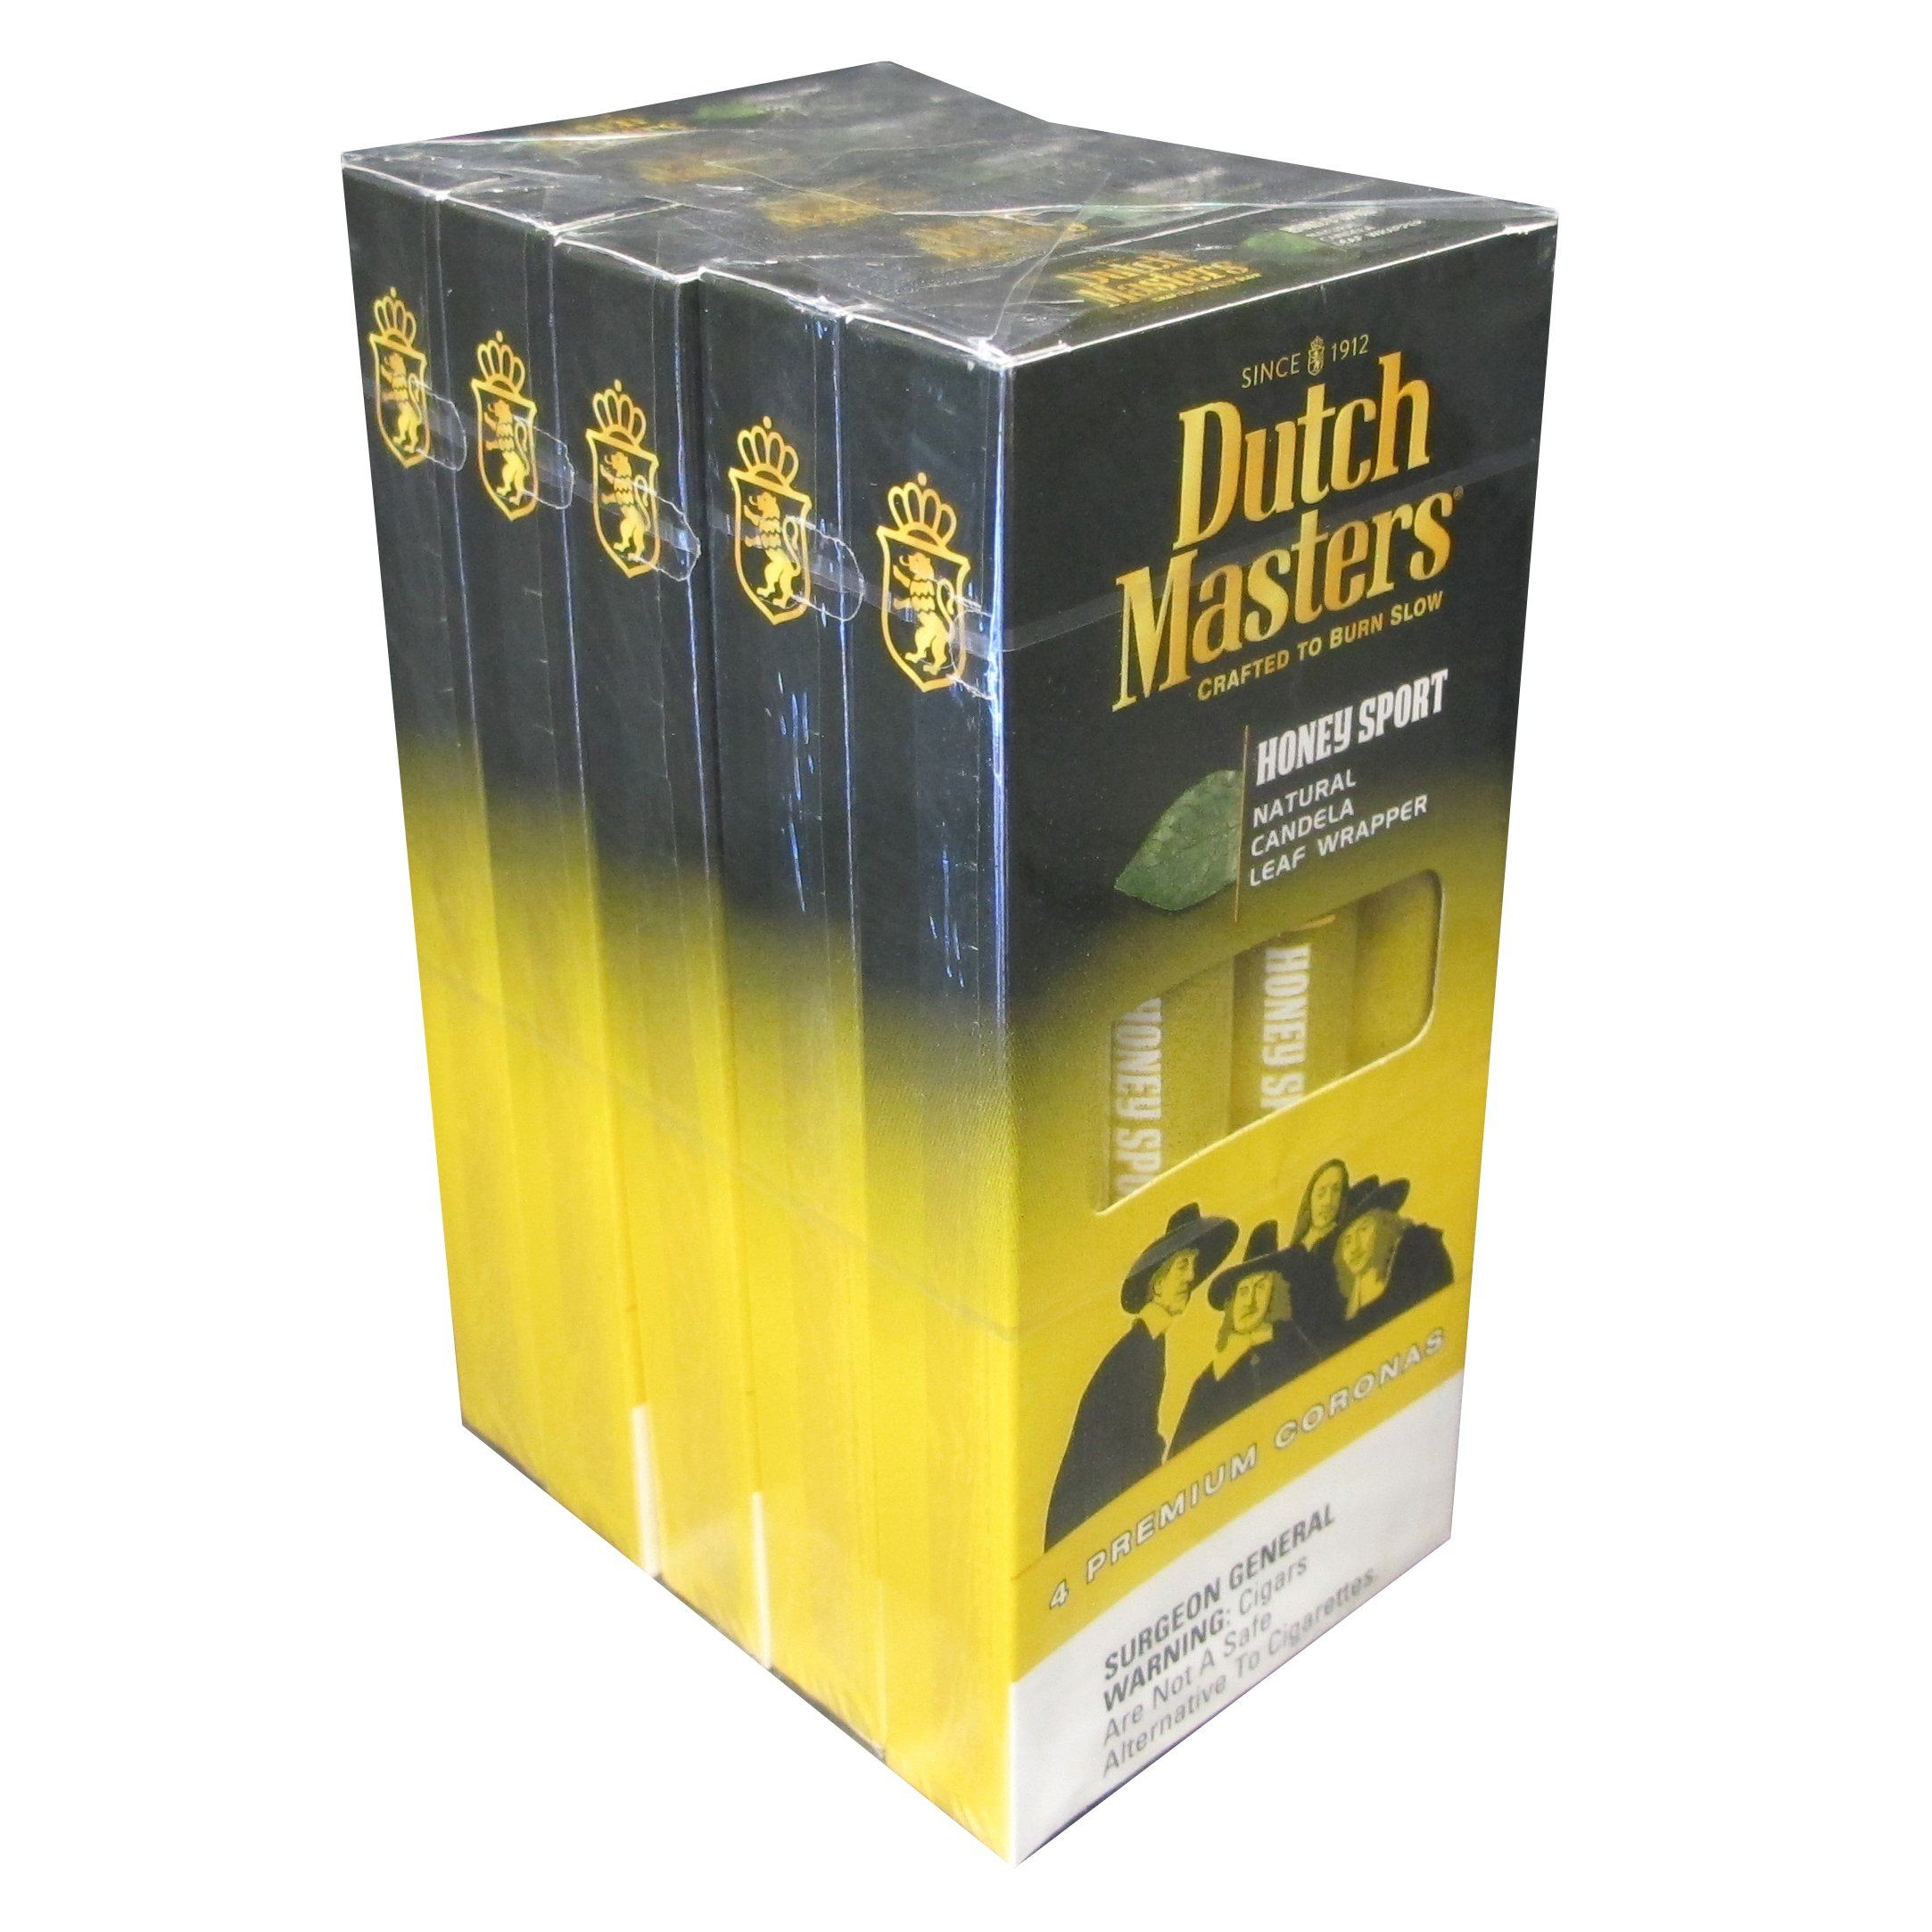 Dutch Masters Honey Sports Cigars